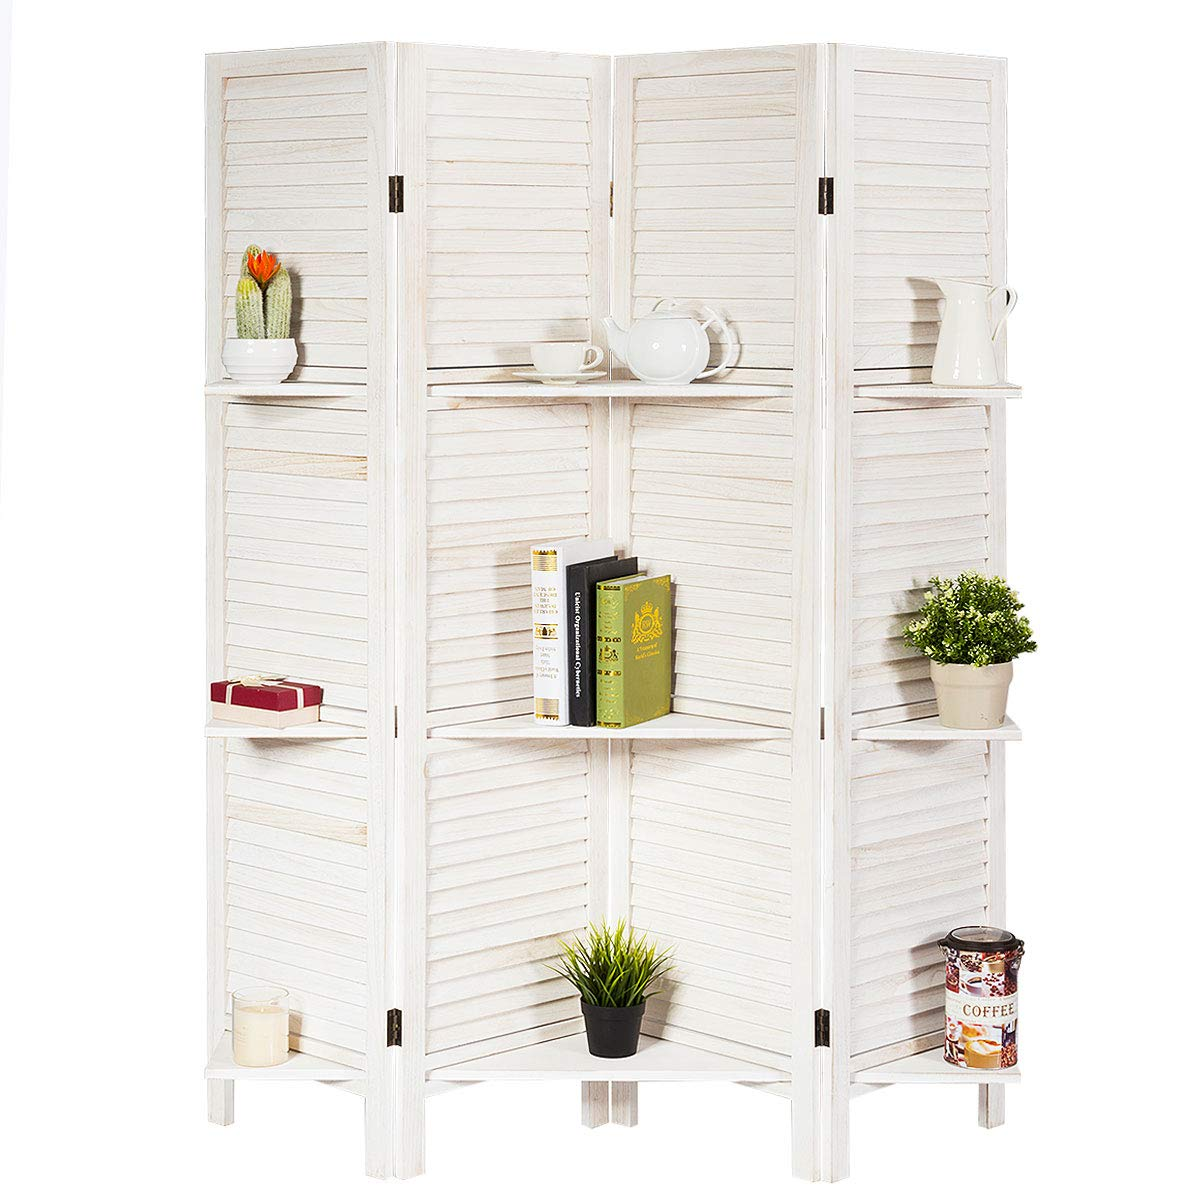 Giantex 4 Panel 5.6 Ft Tall Wood Room Divider, Folding Privacy Room Divider Screen w/ 3 Display Shelves for Home, Office, Restaurant, Bedroom (White) by Giantex